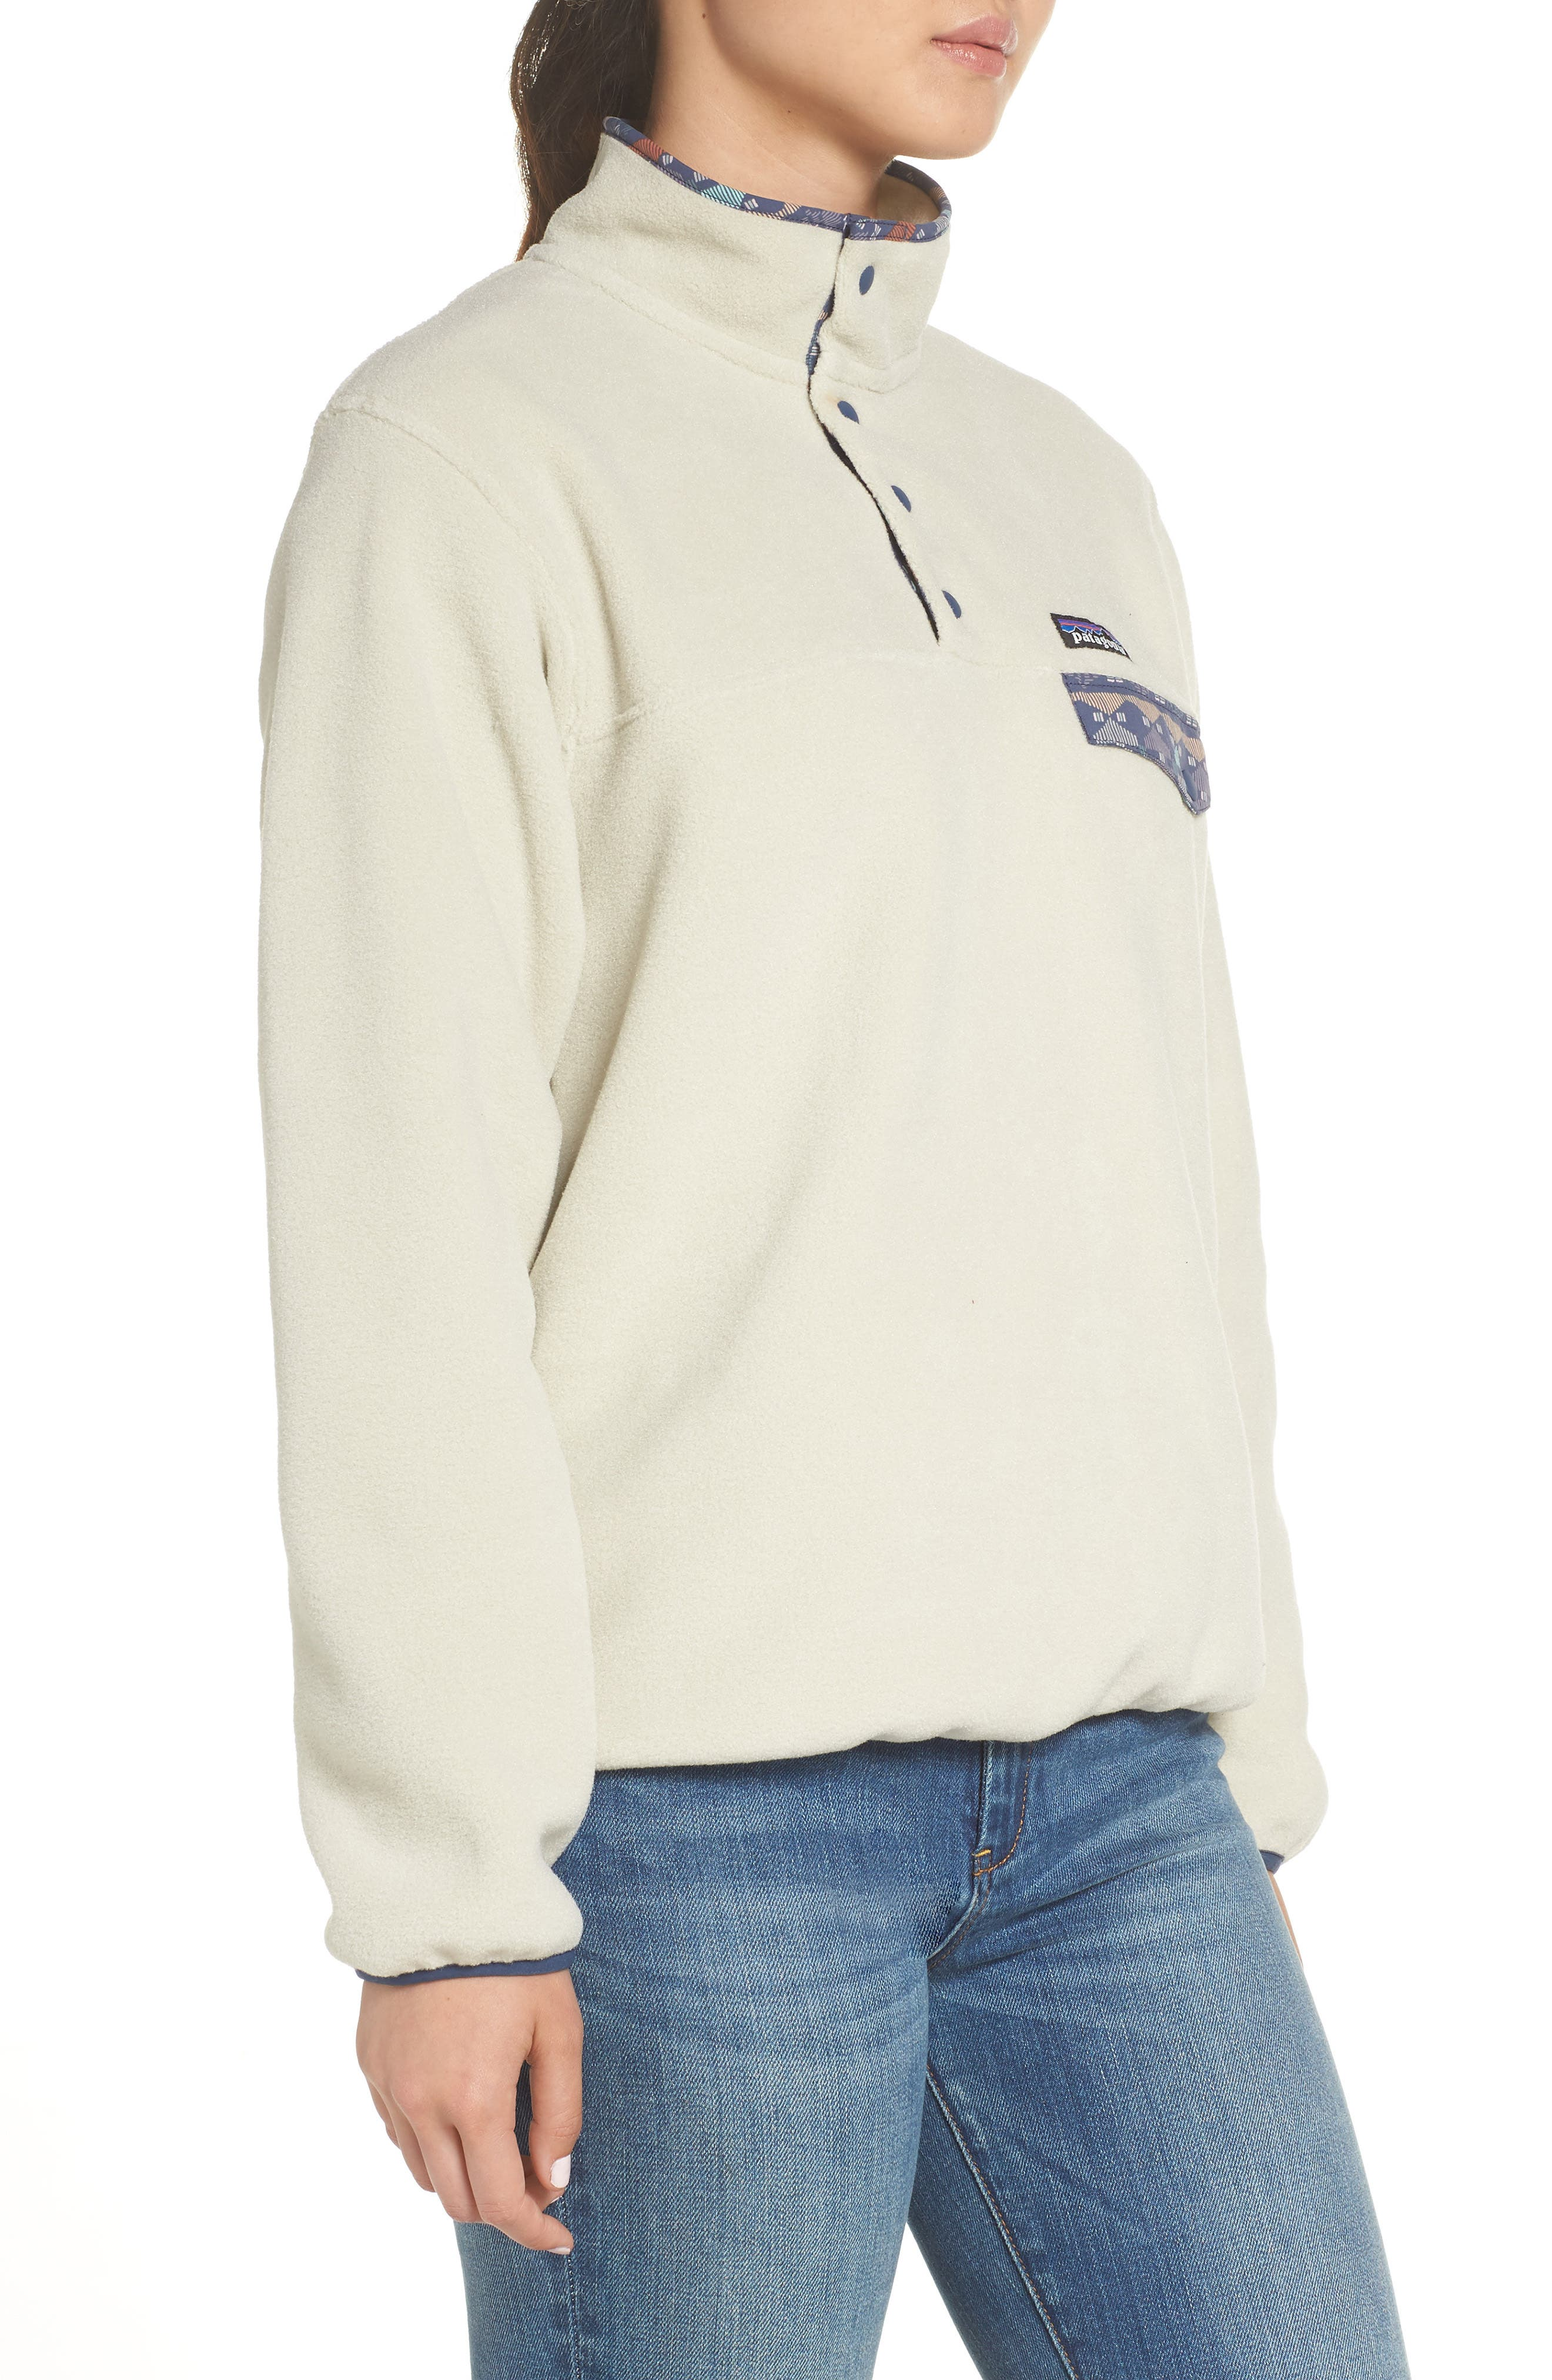 Synchilla Snap-T<sup>®</sup> Fleece Pullover,                             Alternate thumbnail 3, color,                             PELICAN W/ STONE BLUE